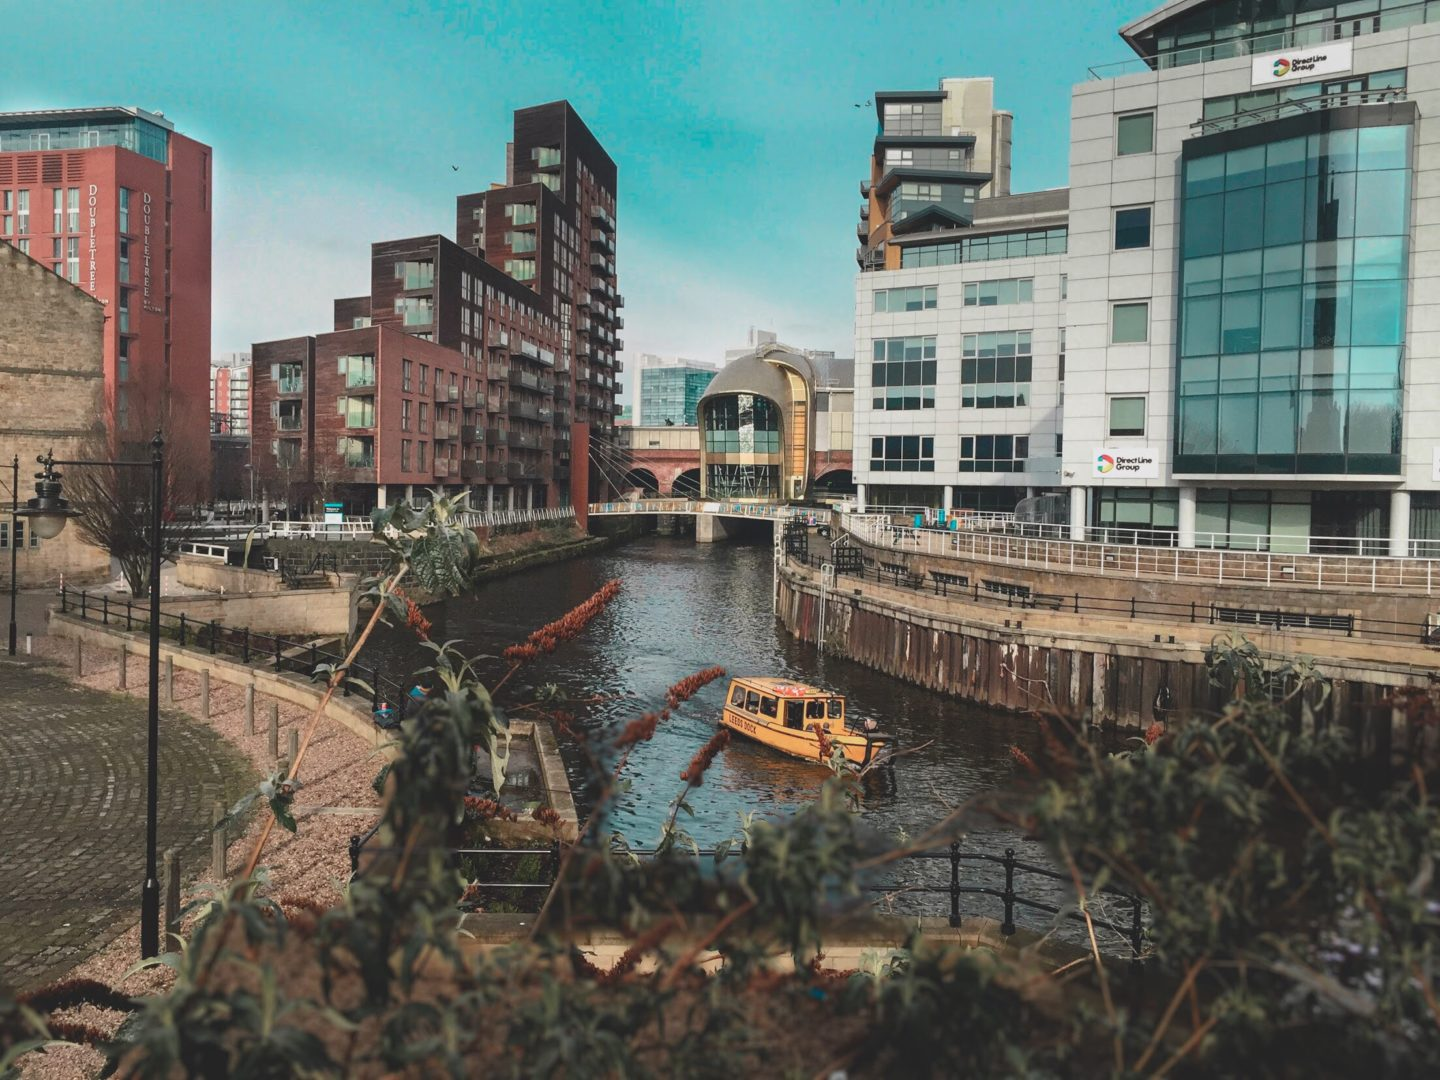 An image of the Leeds Liverpool canal